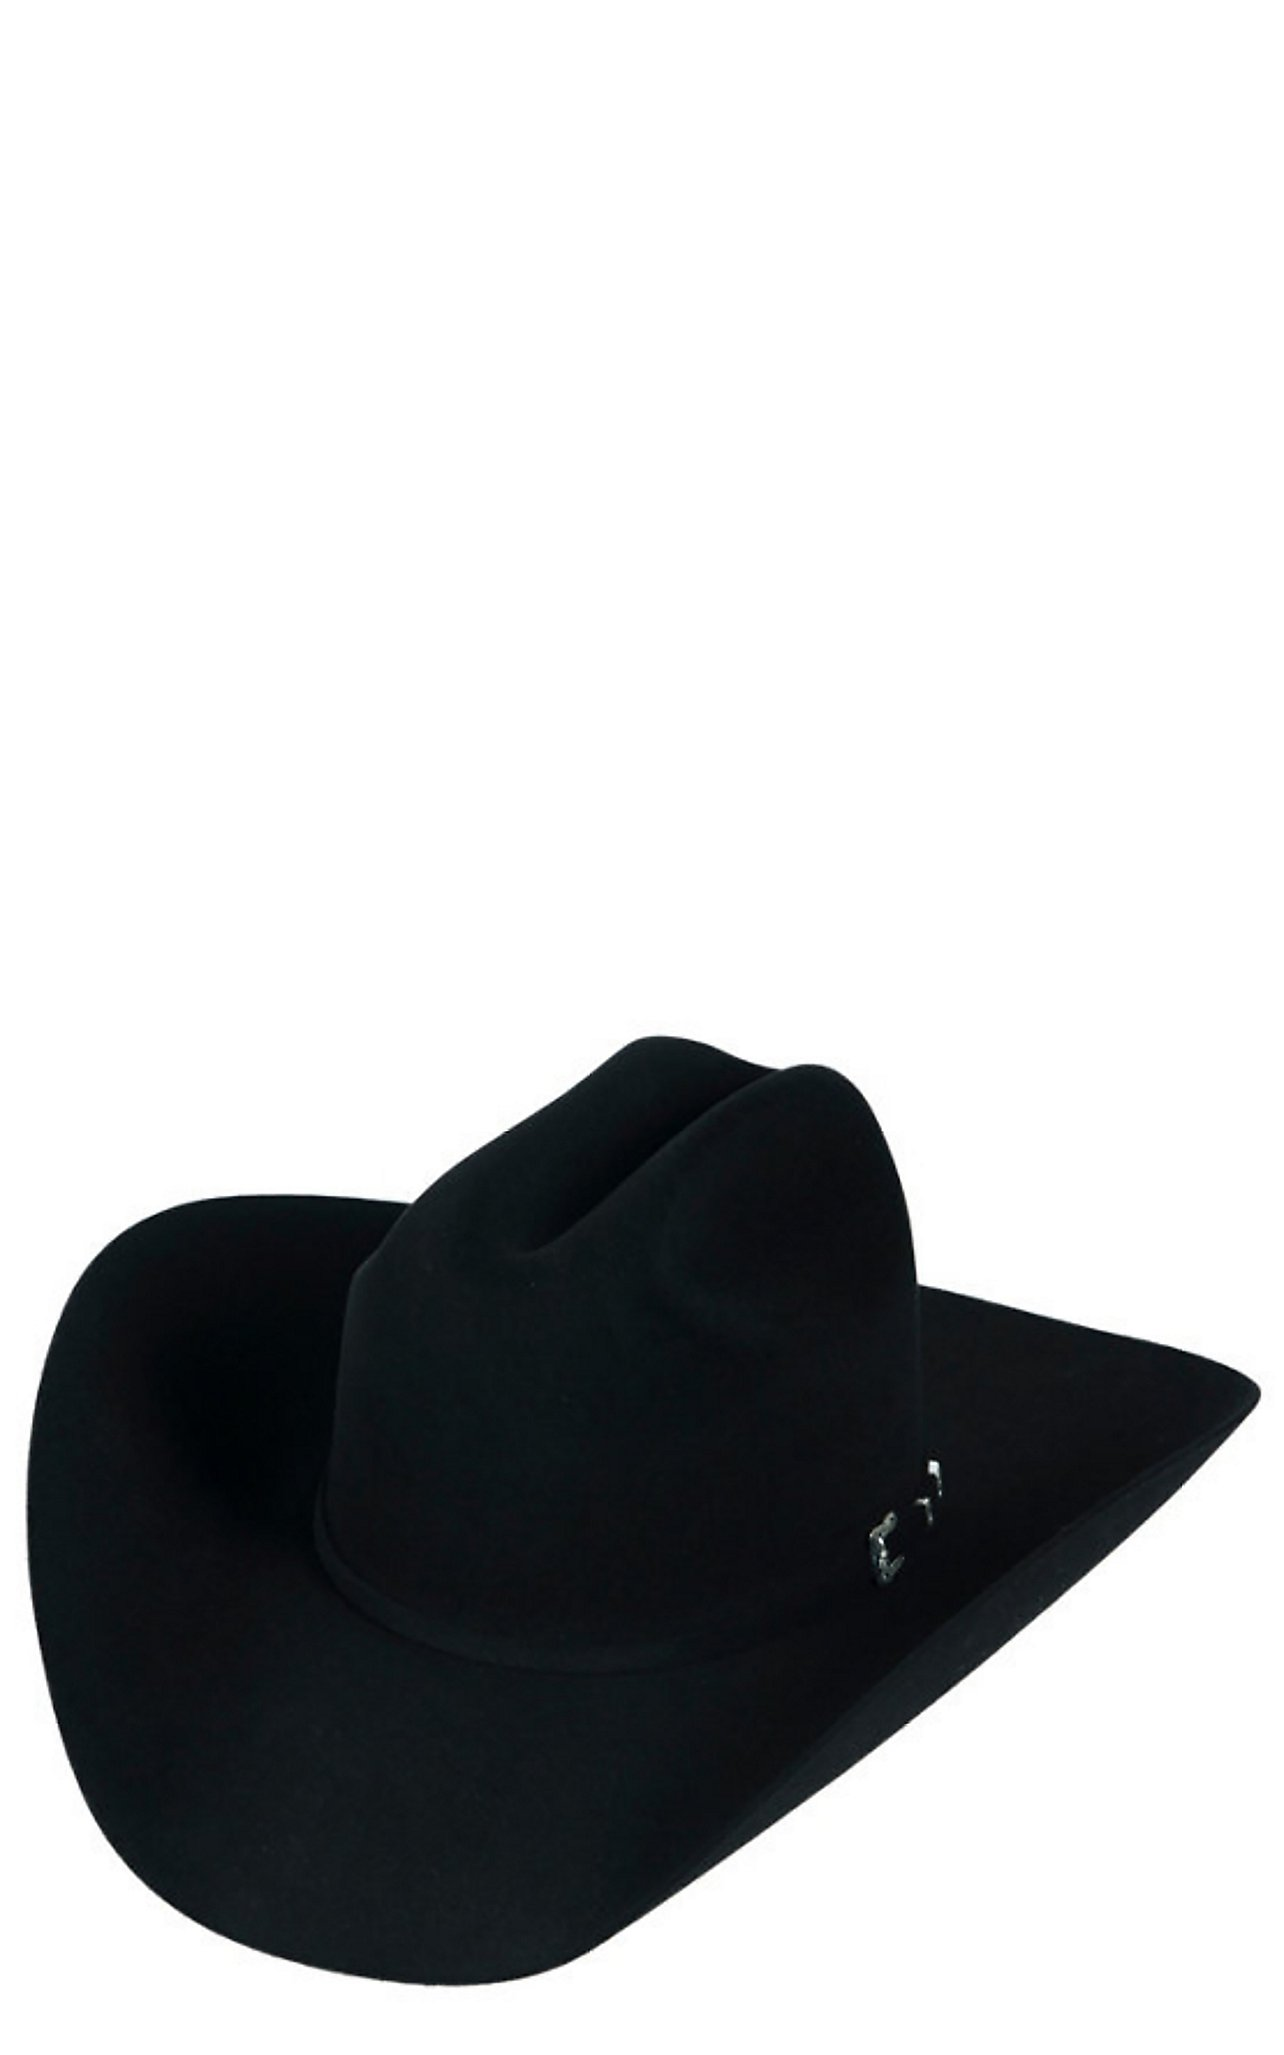 56649bf39b5 Resistol 6X Wilderness Black Felt Cowboy Hat